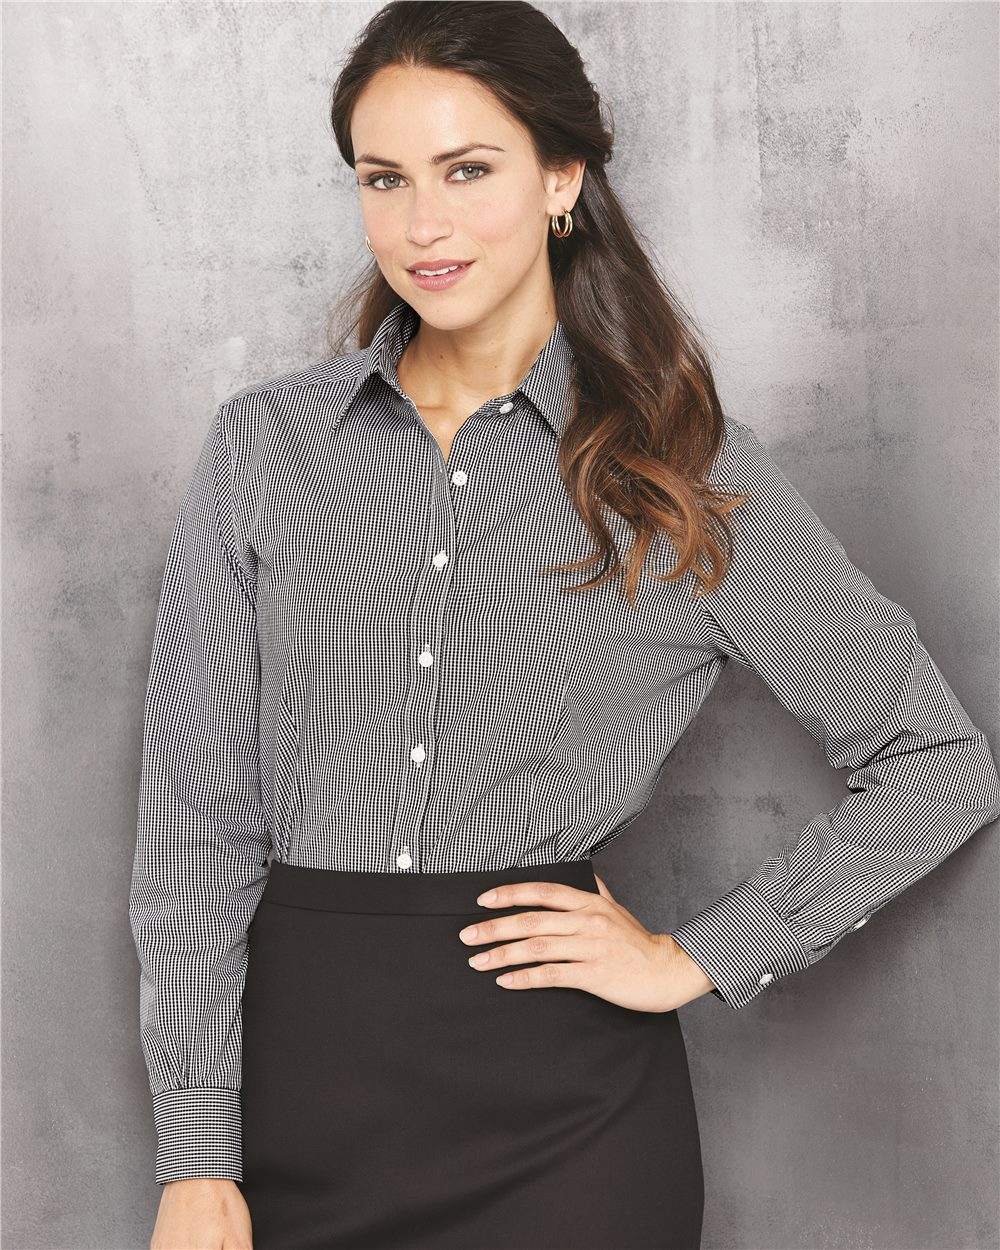 Van Heusen 13V0226 - Ladies' Gingham Check Shirt